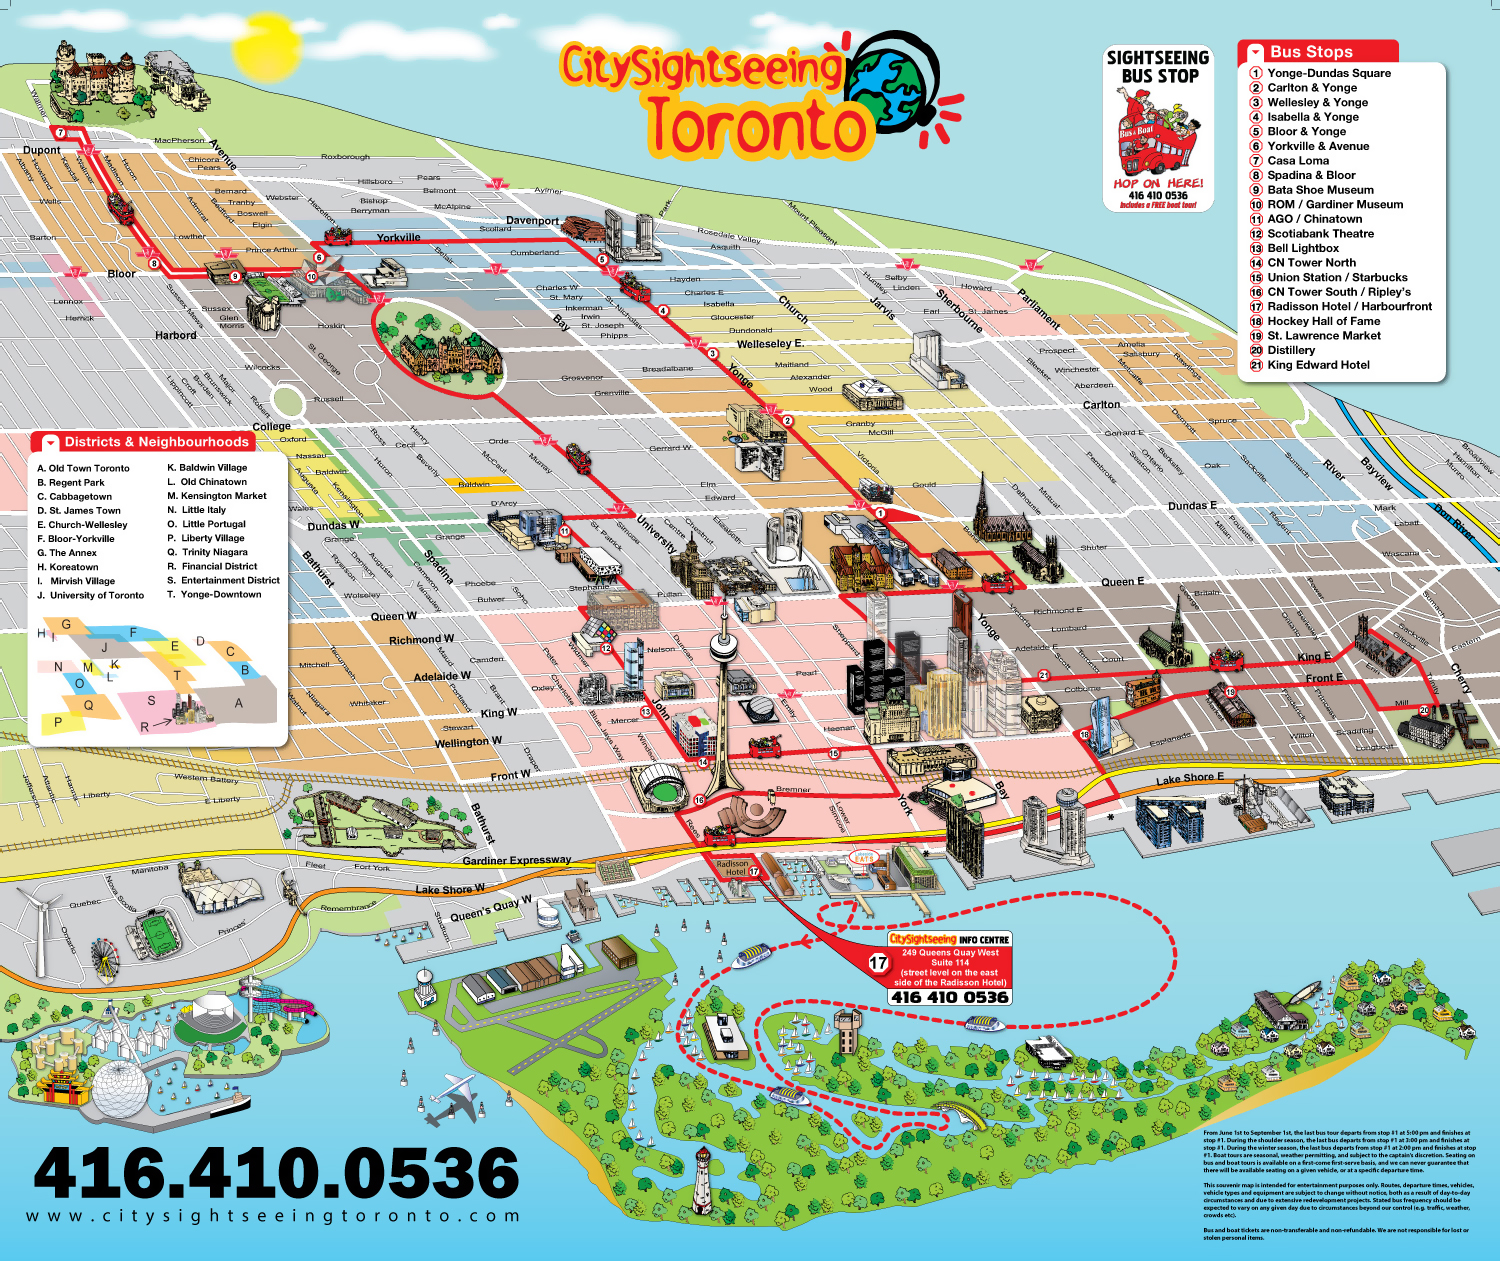 Large tourist panoramic map of Toronto city Vidianicom Maps of